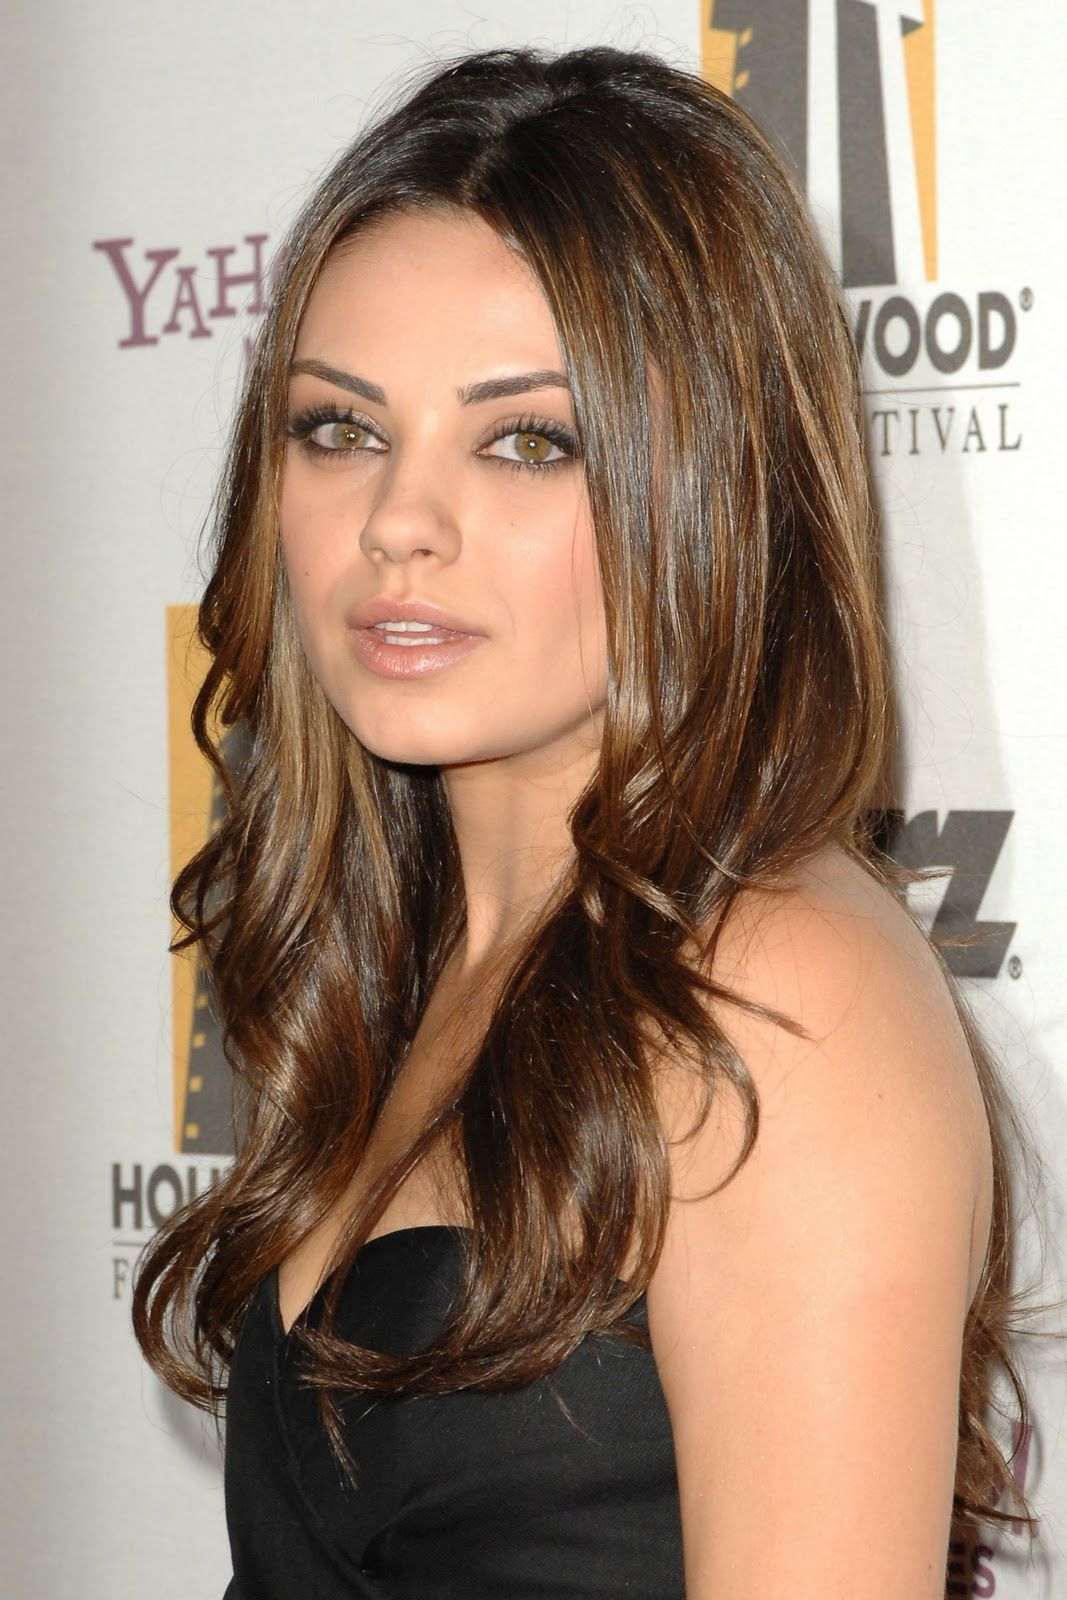 mila kunis hairstyles mila kunis hair 3 best hair styles. Black Bedroom Furniture Sets. Home Design Ideas